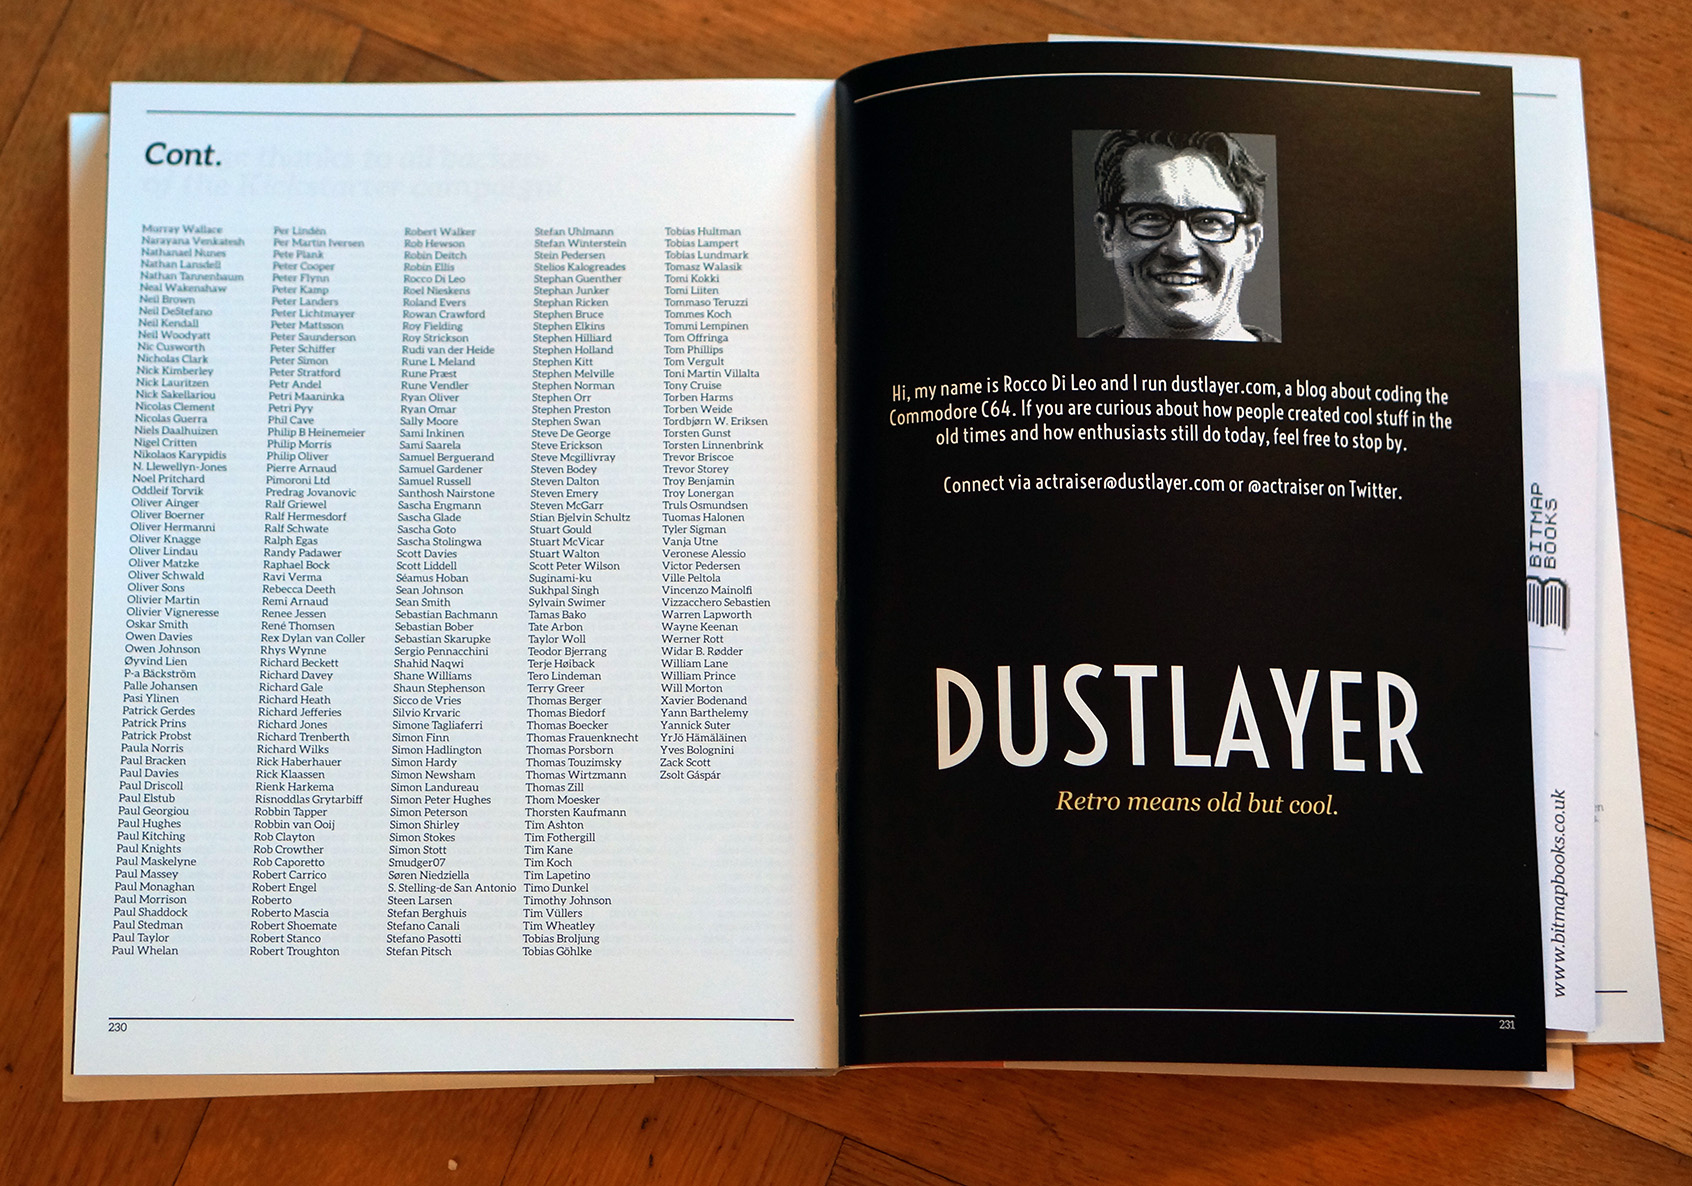 The first printed advertisement for dustlayer.com